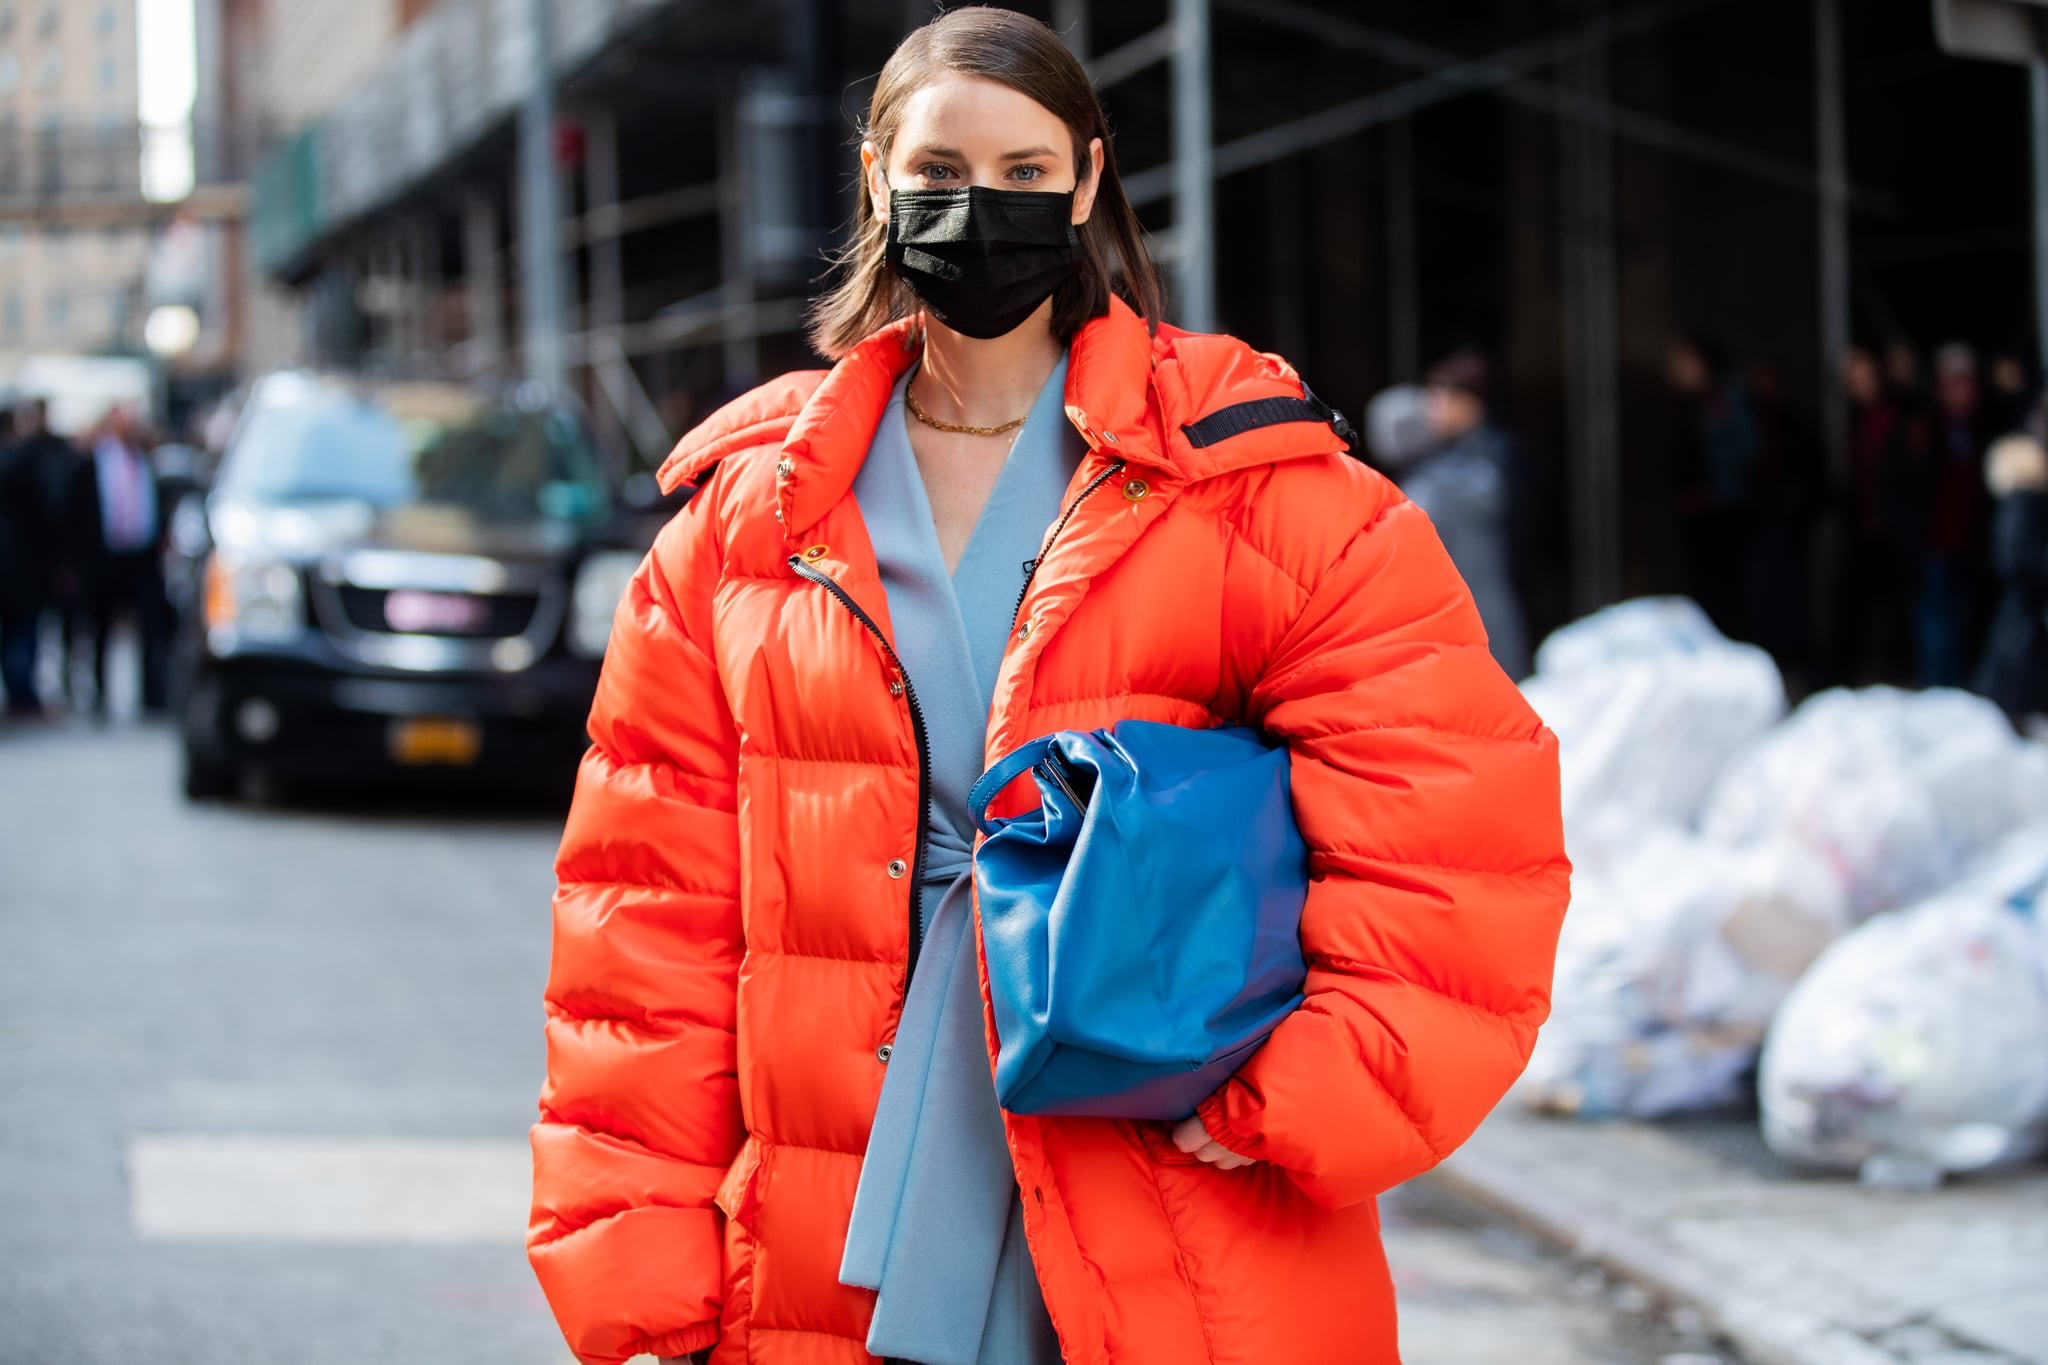 NEW YORK, NEW YORK - FEBRUARY 12: Marina Ingvarsson is seen wearing face mask outside Michael Kors during New York Fashion Week Fall / Winter 2020 on February 12, 2020 in New York City. (Photo by Christian Vierig/Getty Images)